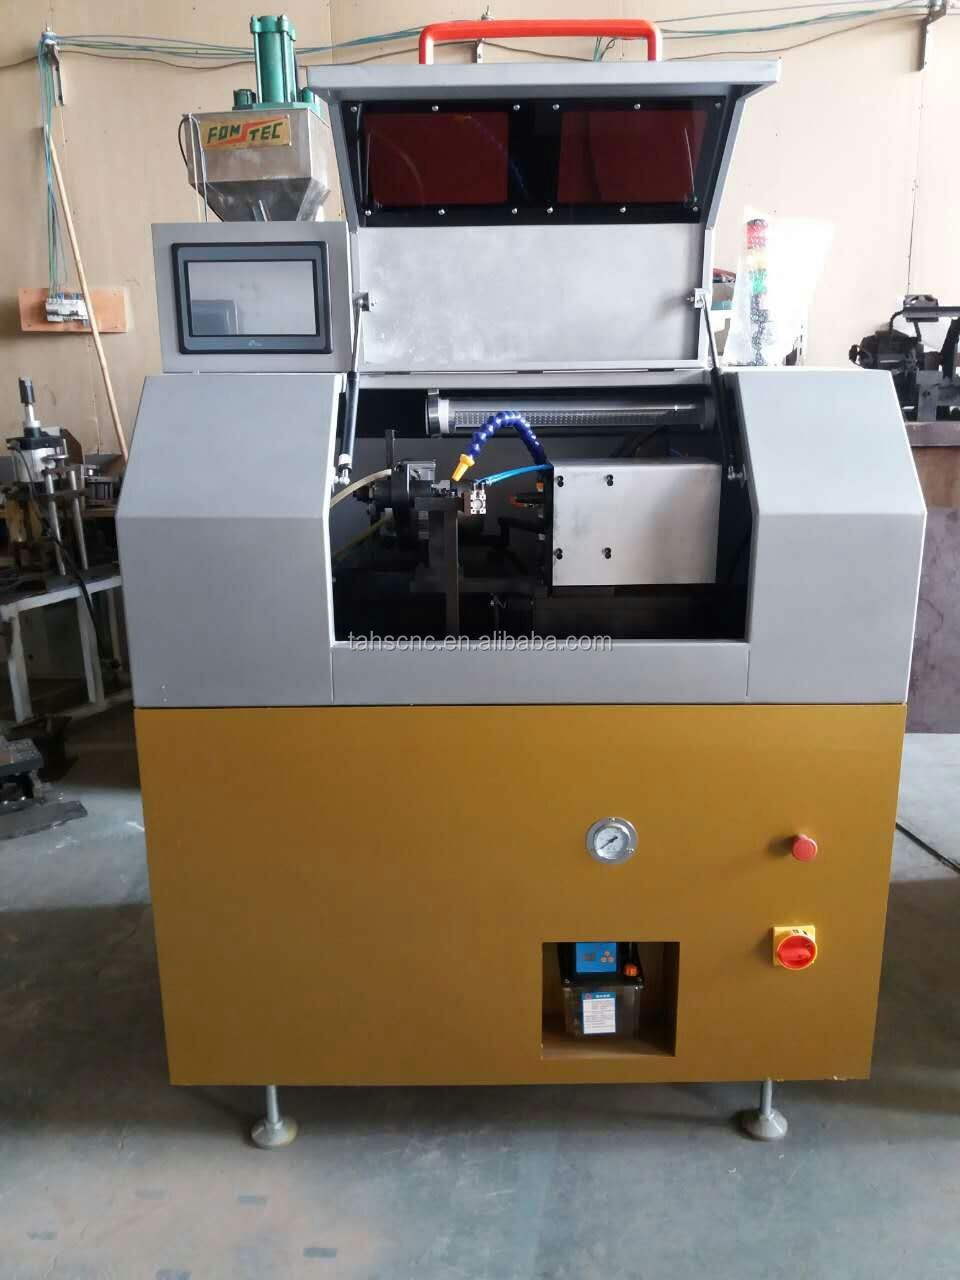 4 Axis Cnc Grinding Machine For Endodontic Files Vik 4a